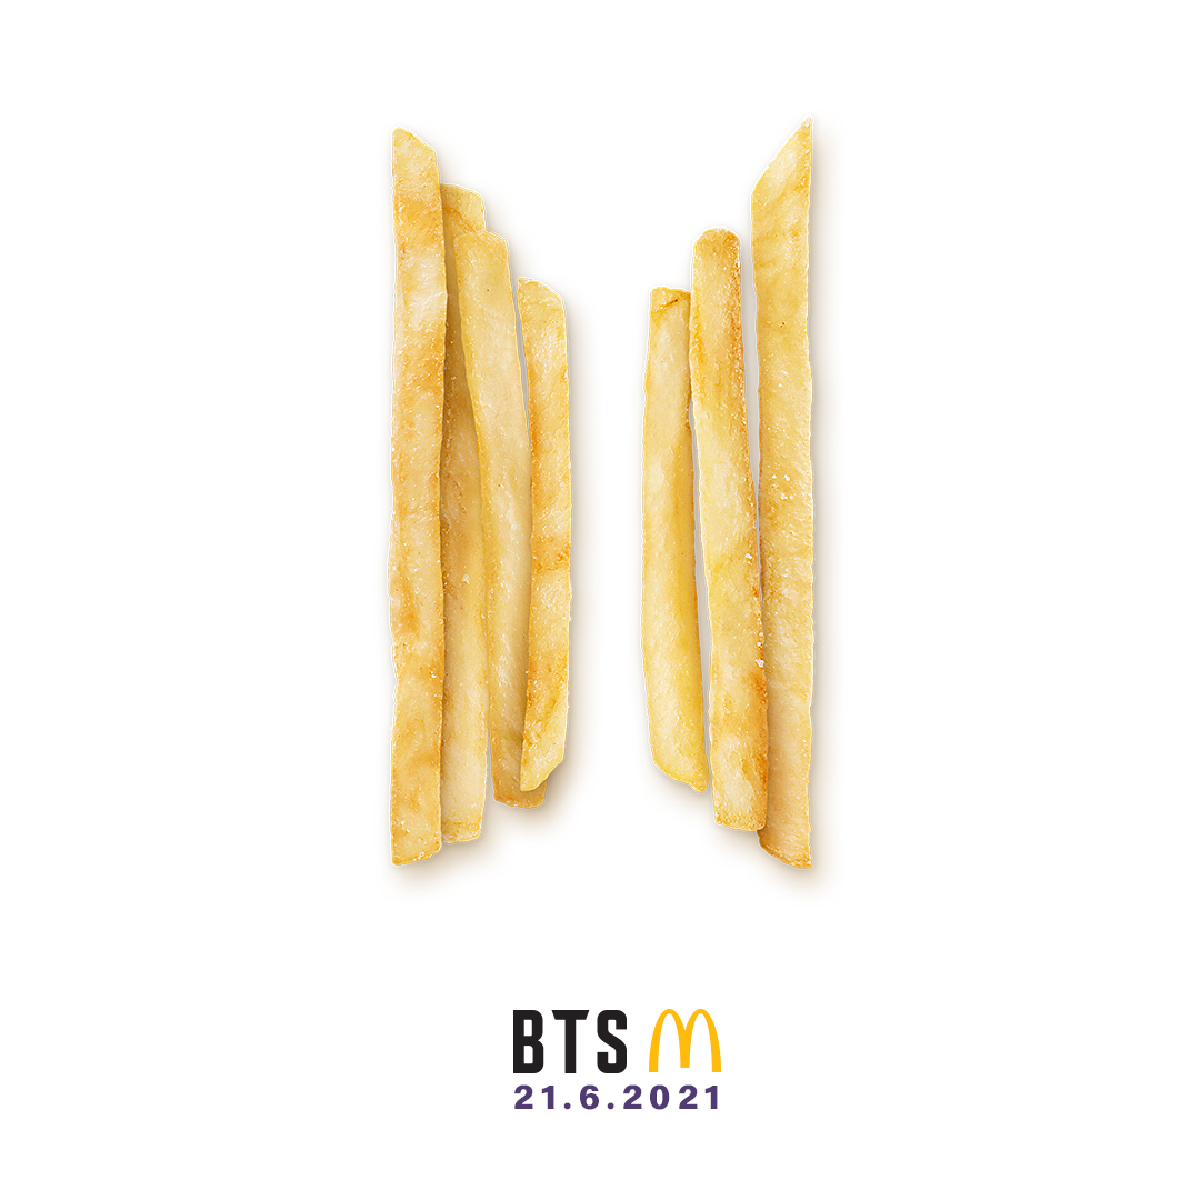 BTS Meal To Launch In Singapore On June 21